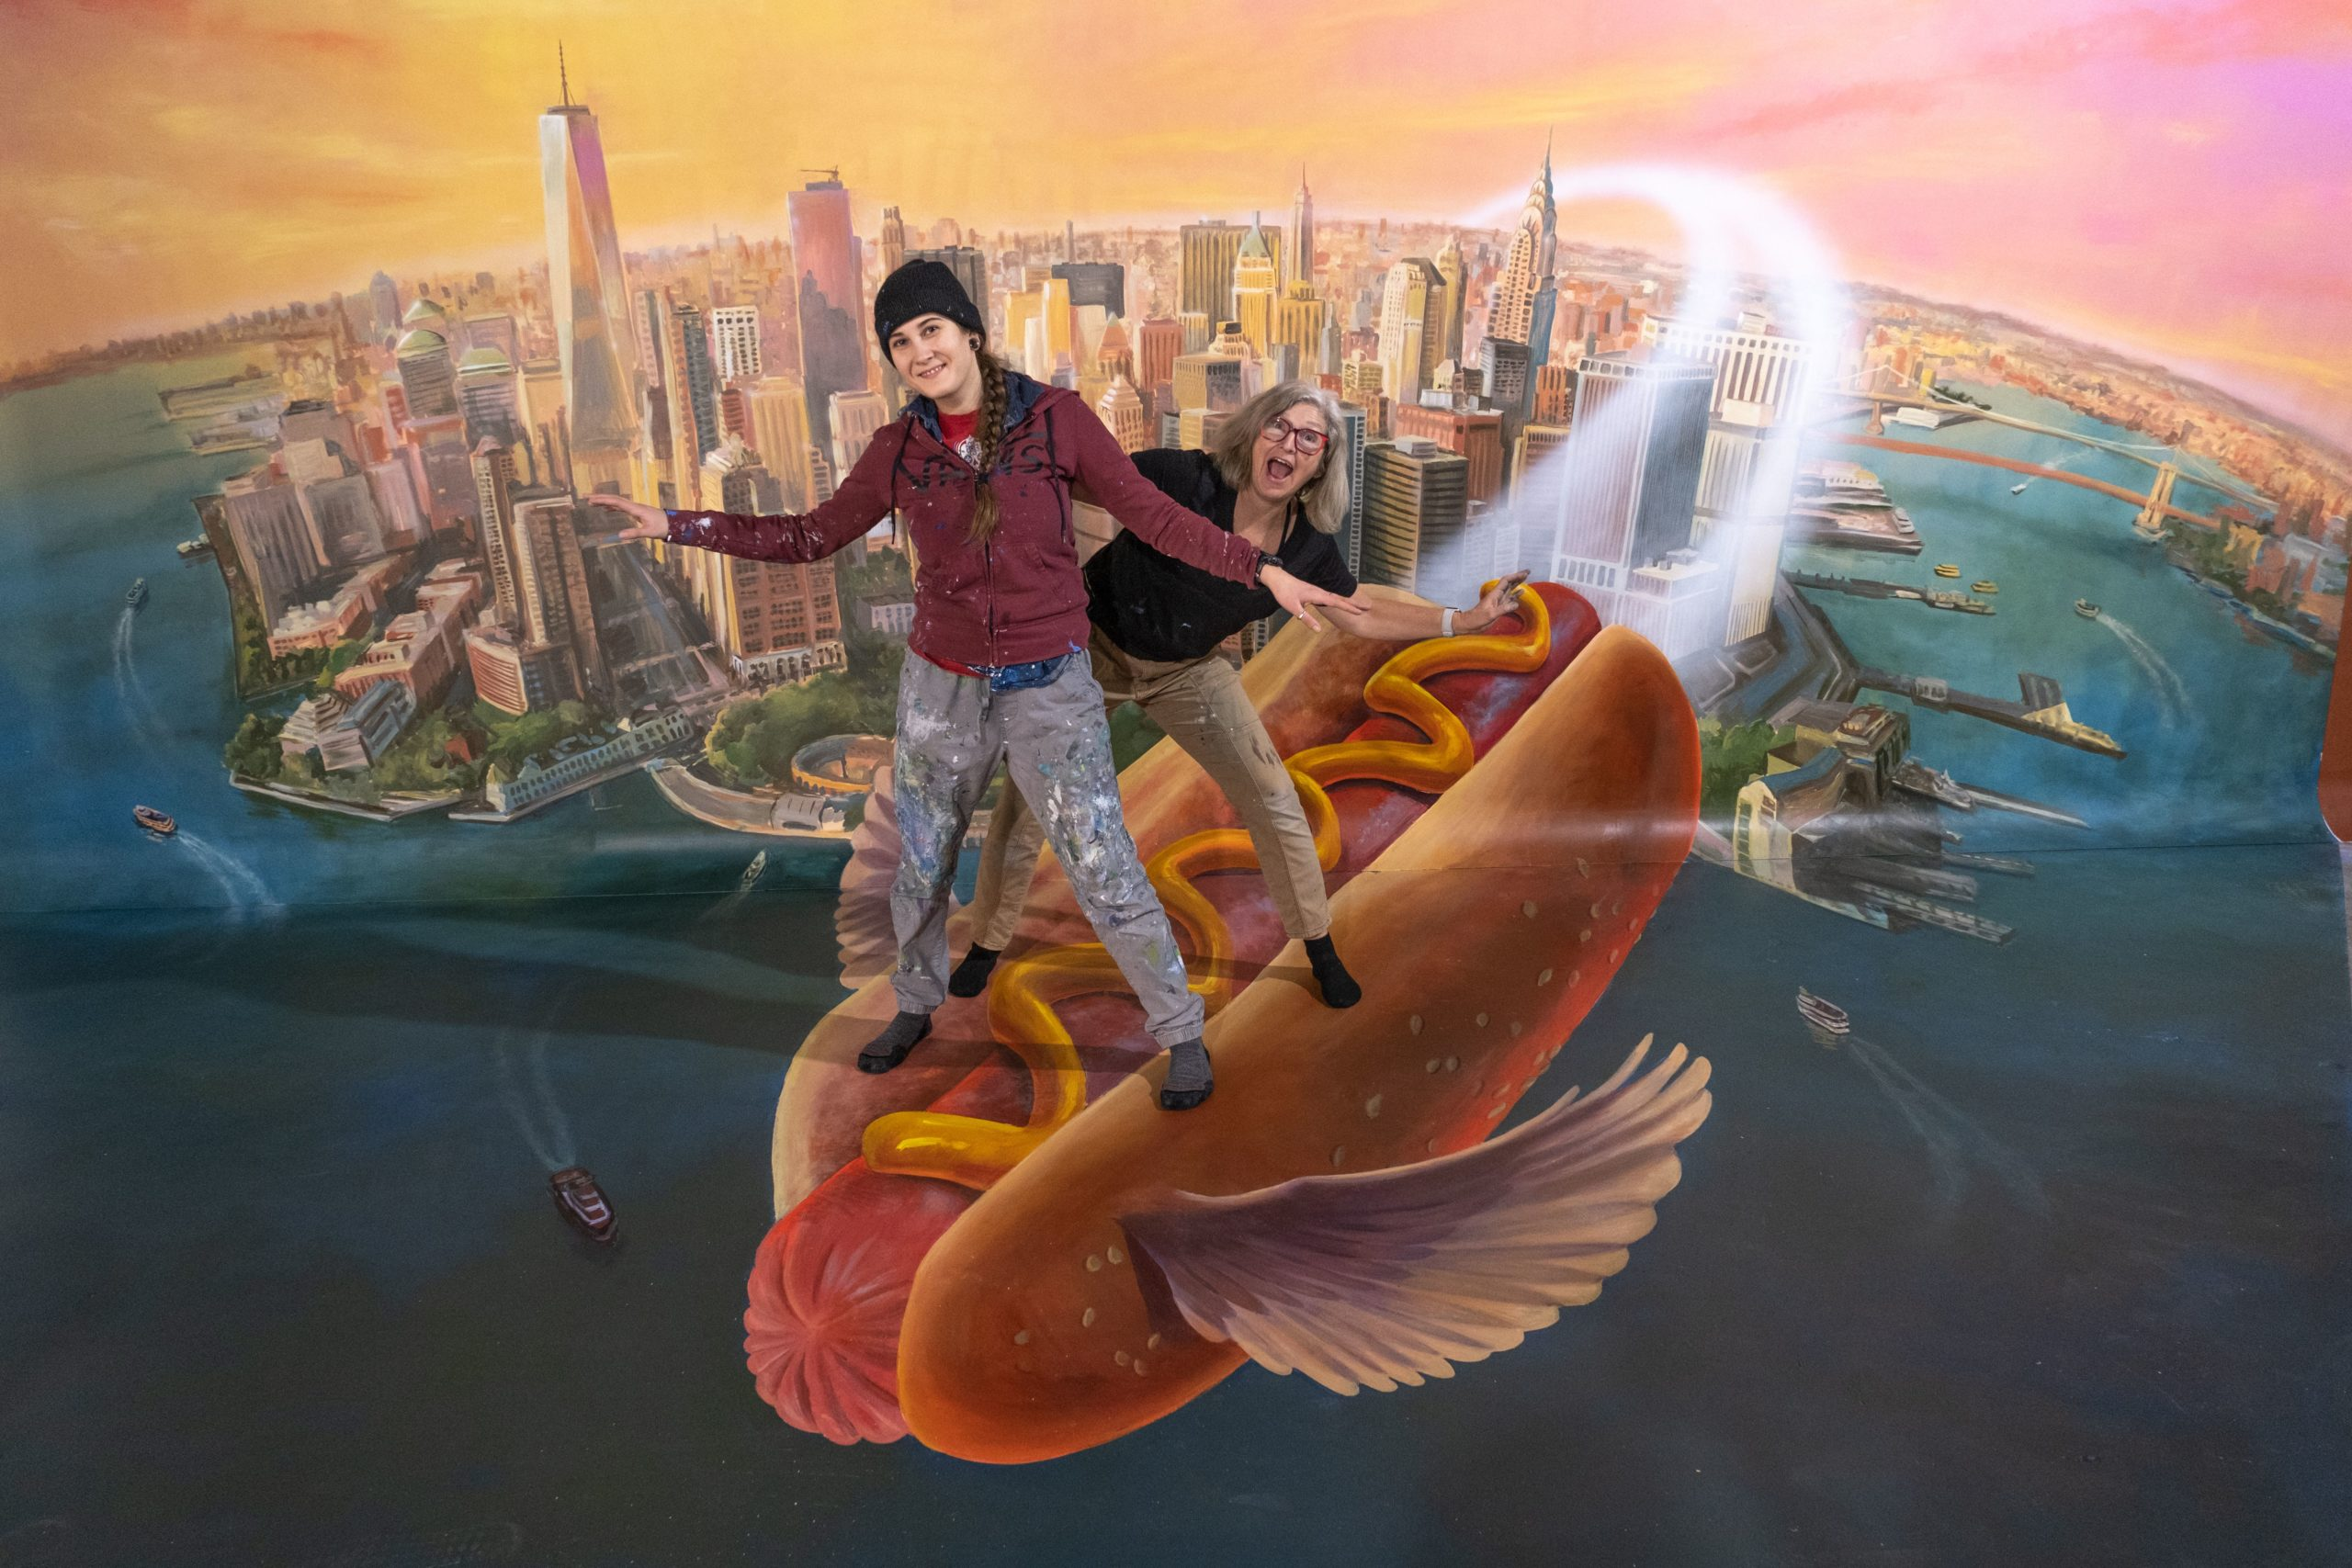 Two people pose in the magic hot dog mural.